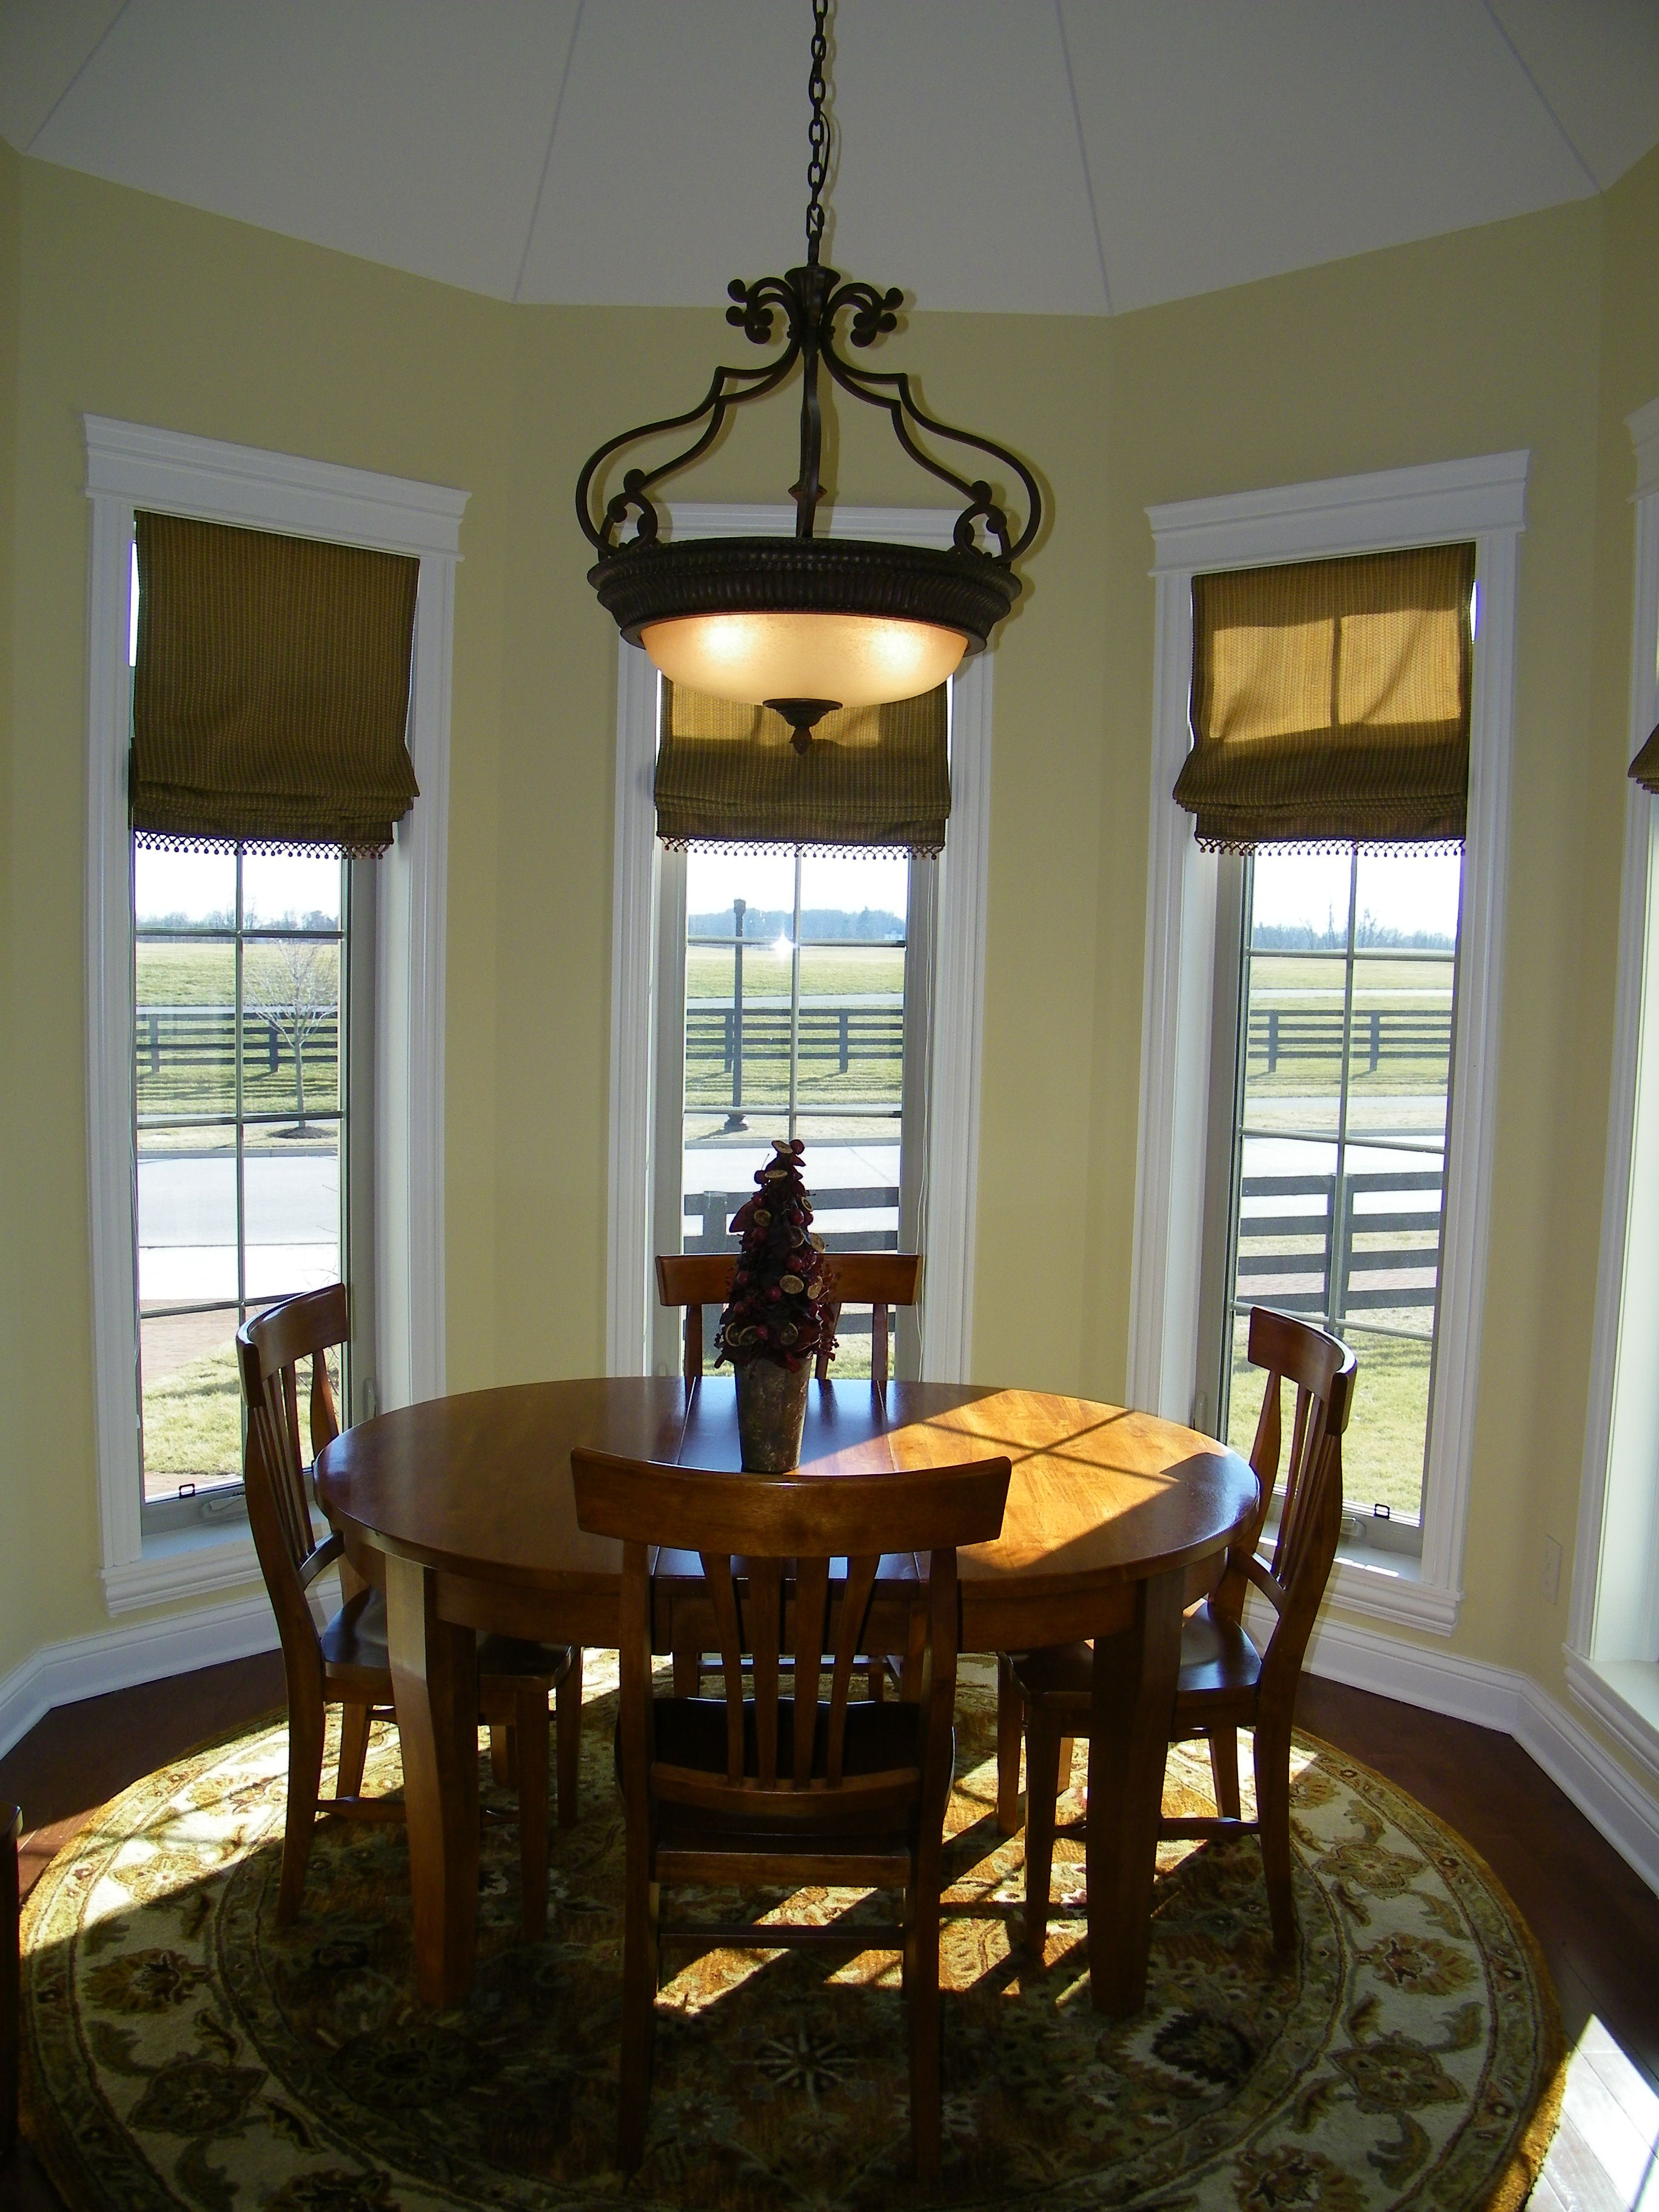 Dining area... This is an impressive example of a custom